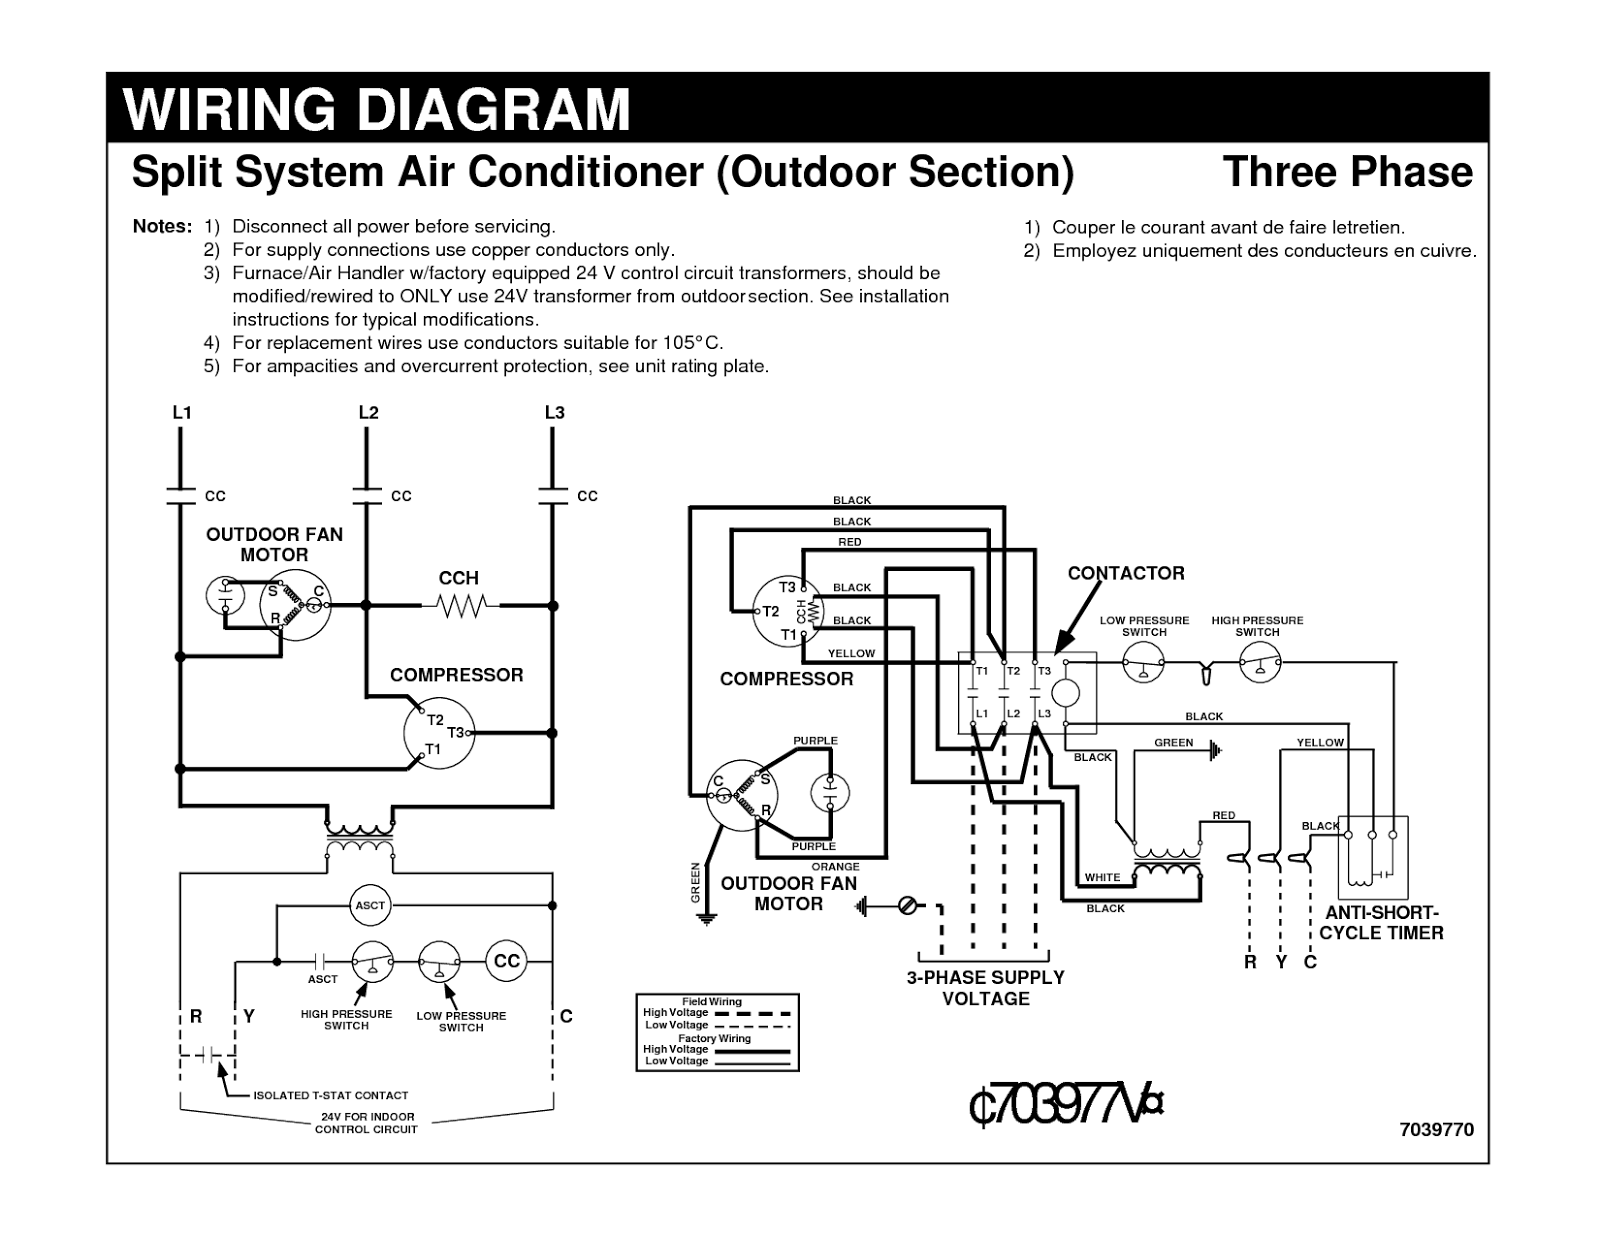 2005 Dodge Ram Power Door Lock Wiring Diagram besides 1294398 Window Switch Wires as well 291331318456 as well Wiring Diagram For Square D Lighting Contactors besides Showthread. on car power window switches